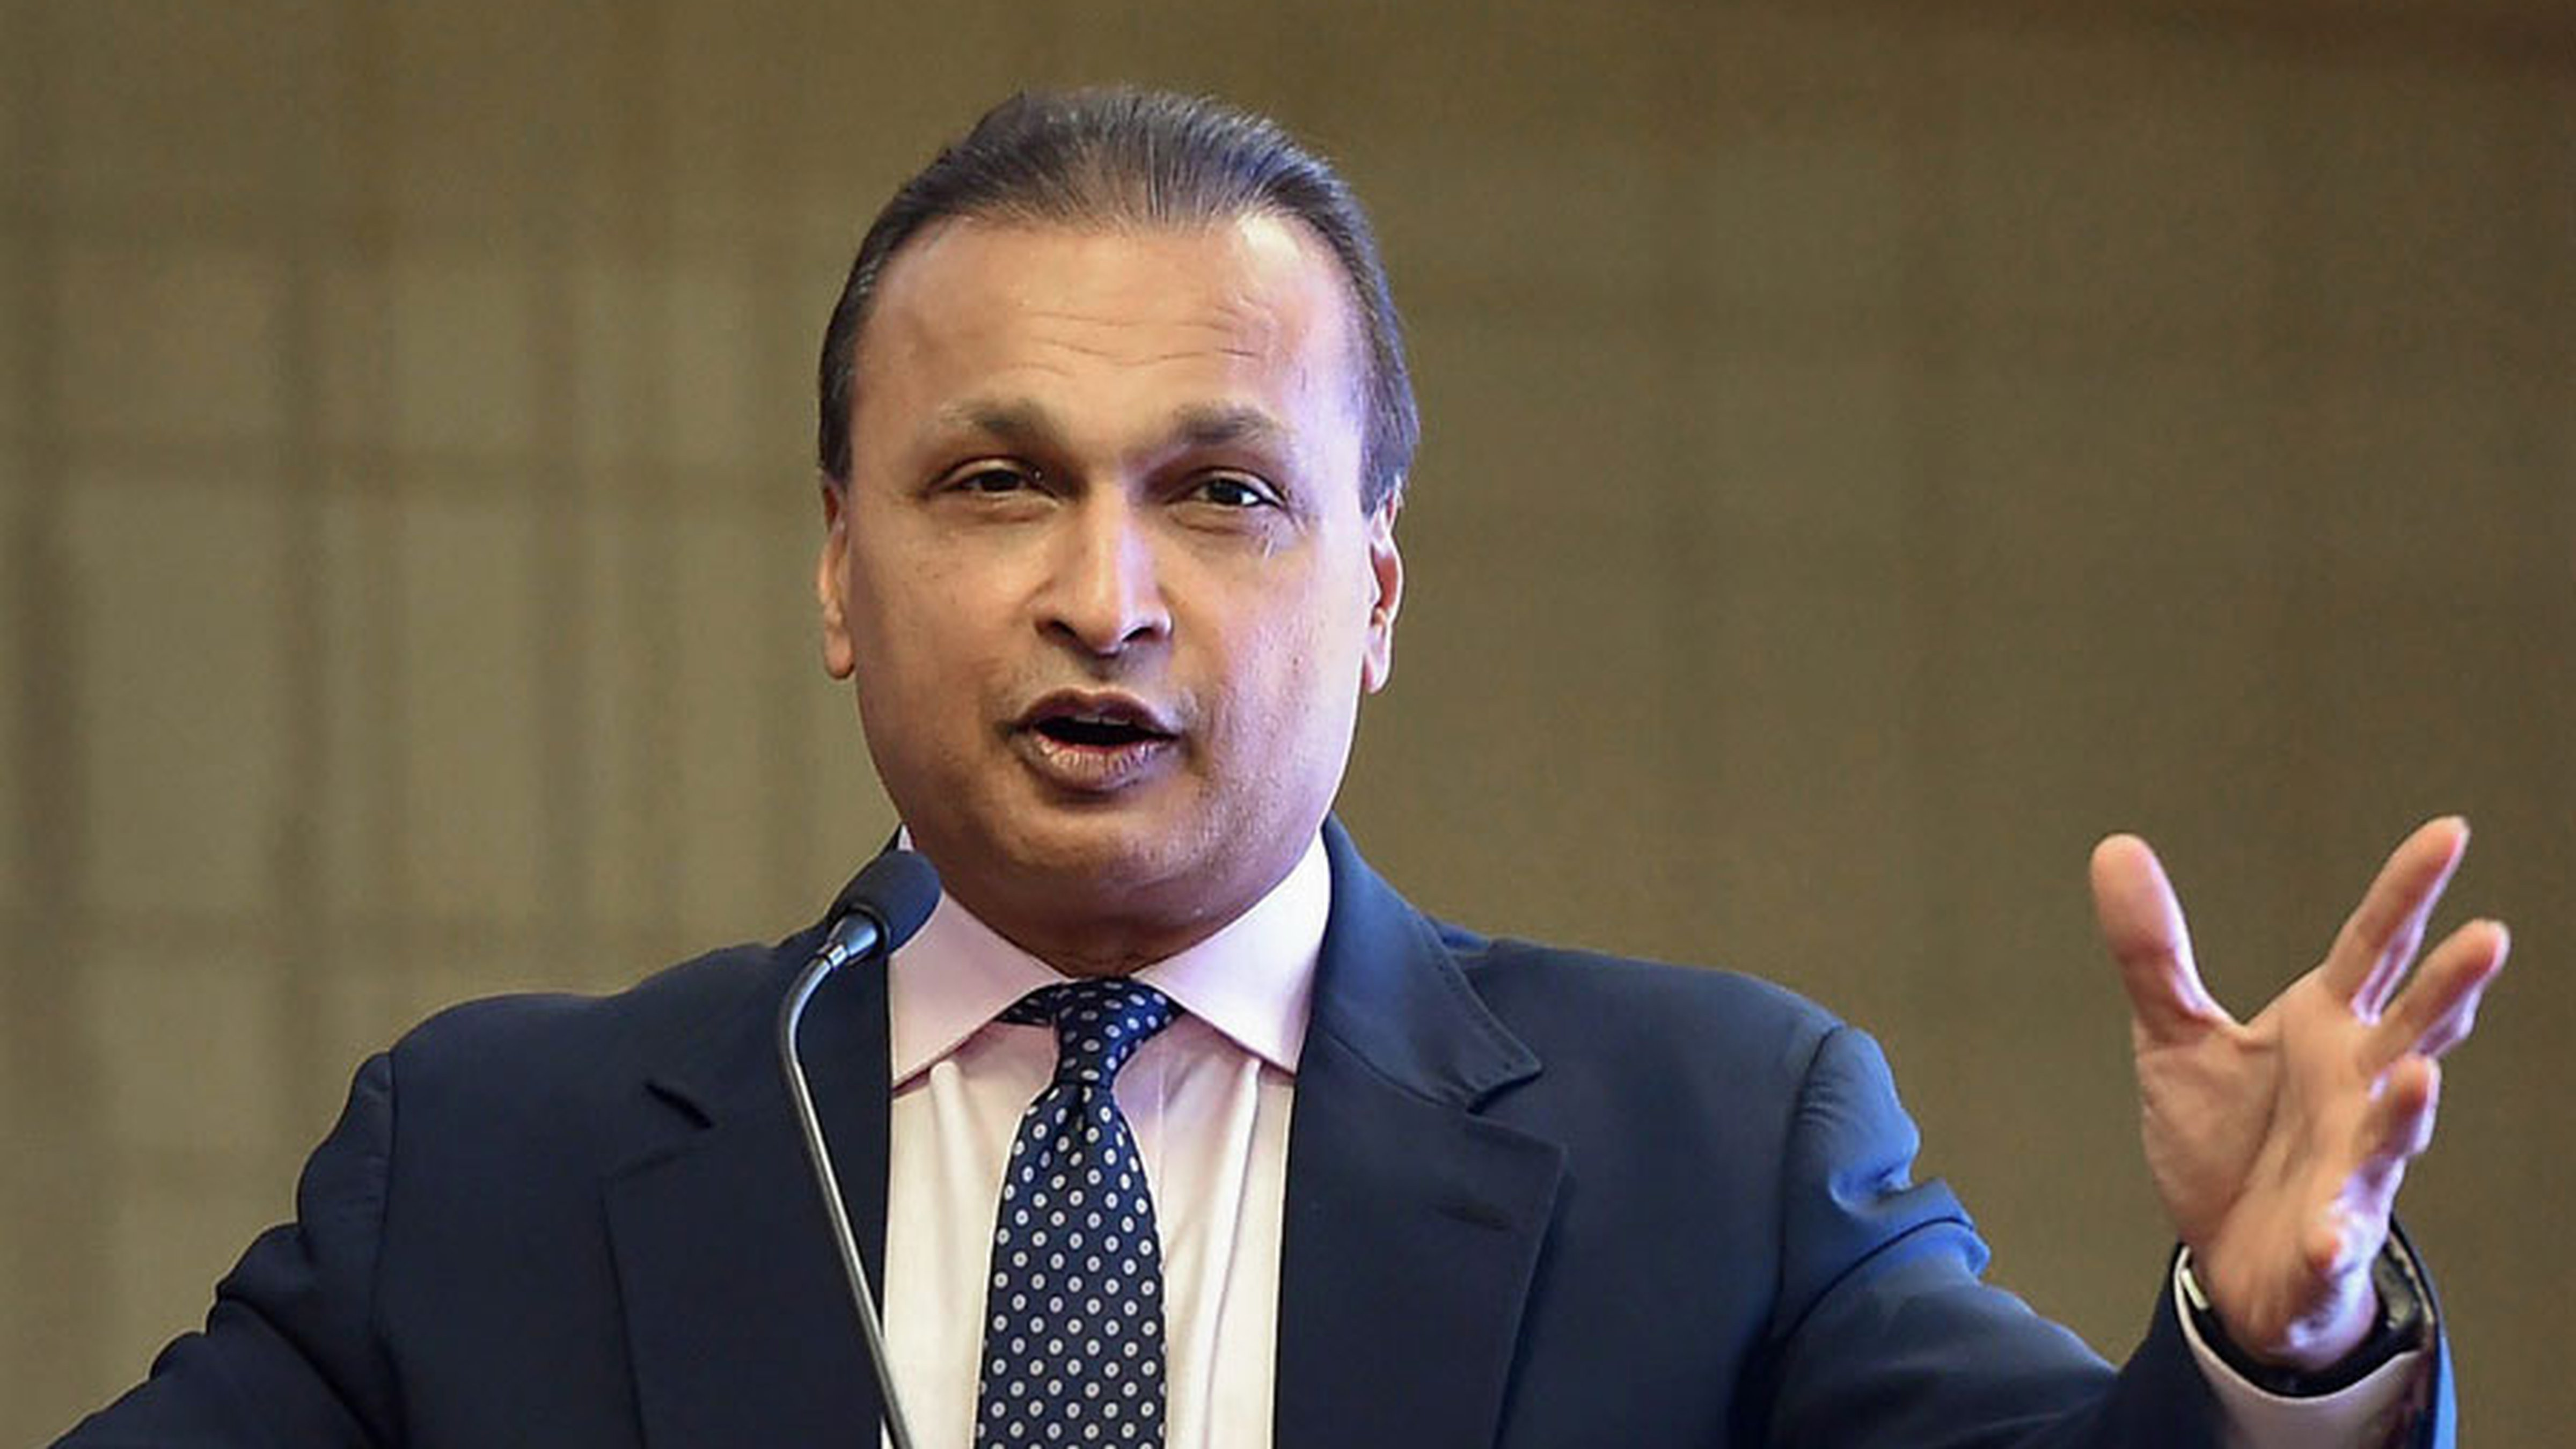 A telecom company of Anil Ambani was permitted to save 143.7 million euros (Rs 1,120 crore at current rates) in a French tax settlement deal.